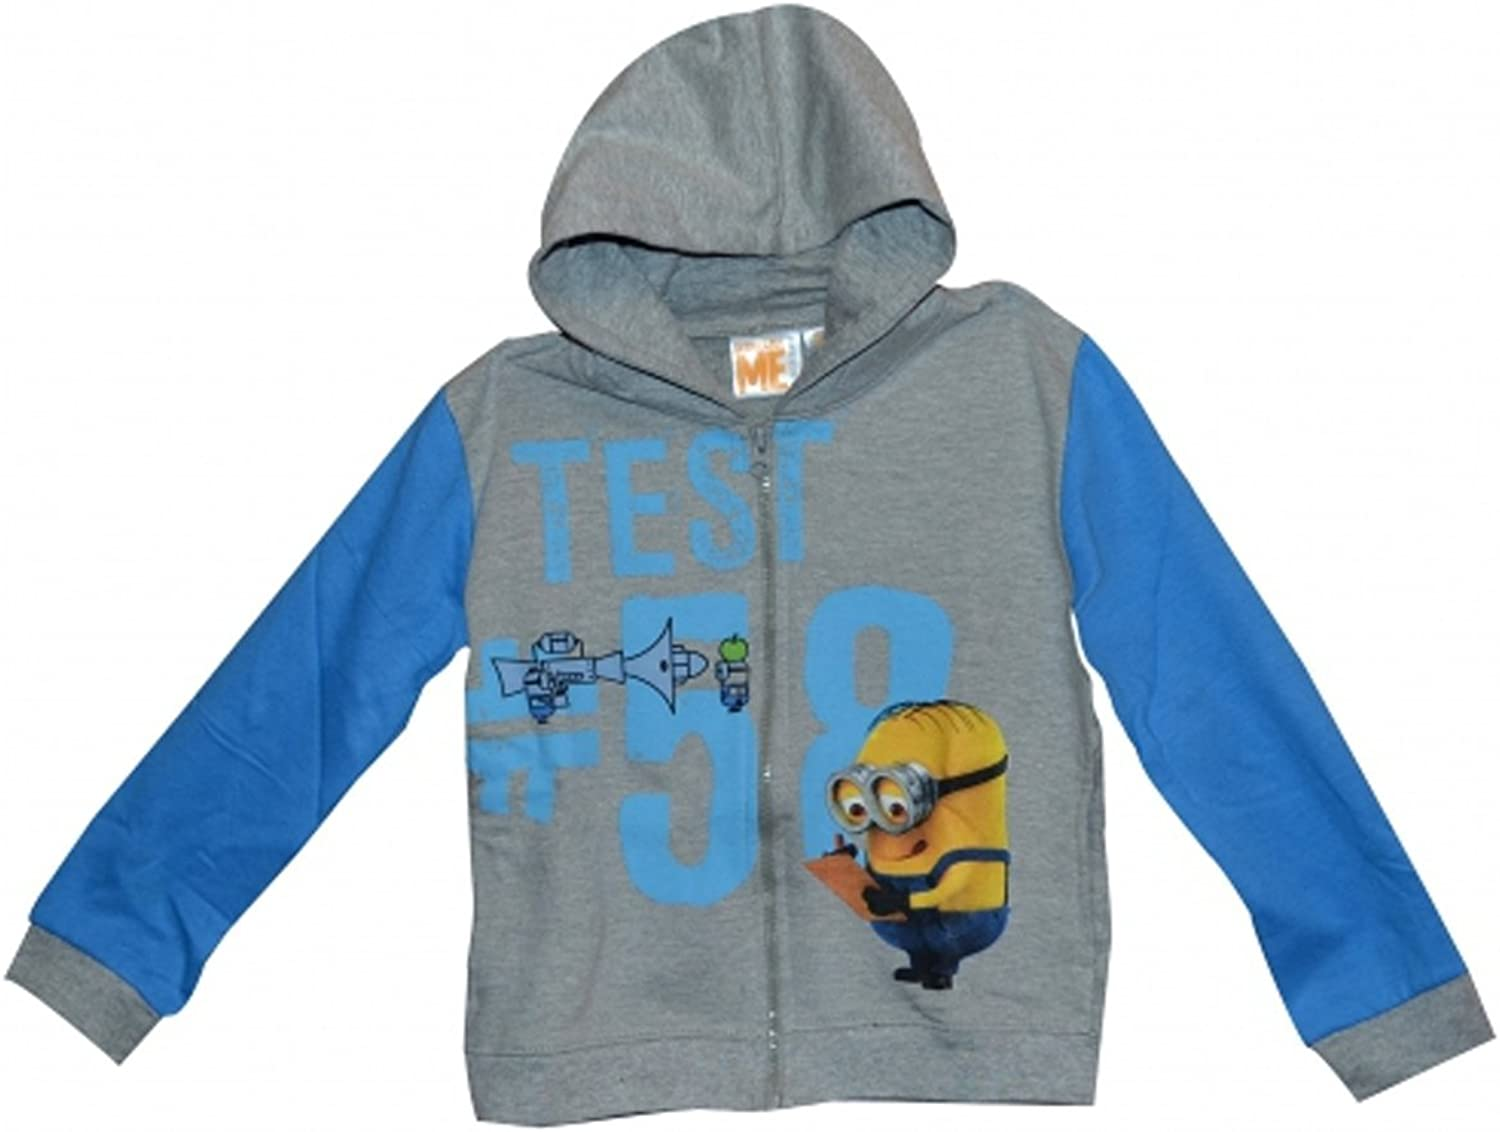 10 Years Character Minions Grey Hoodie Jumper Clothing